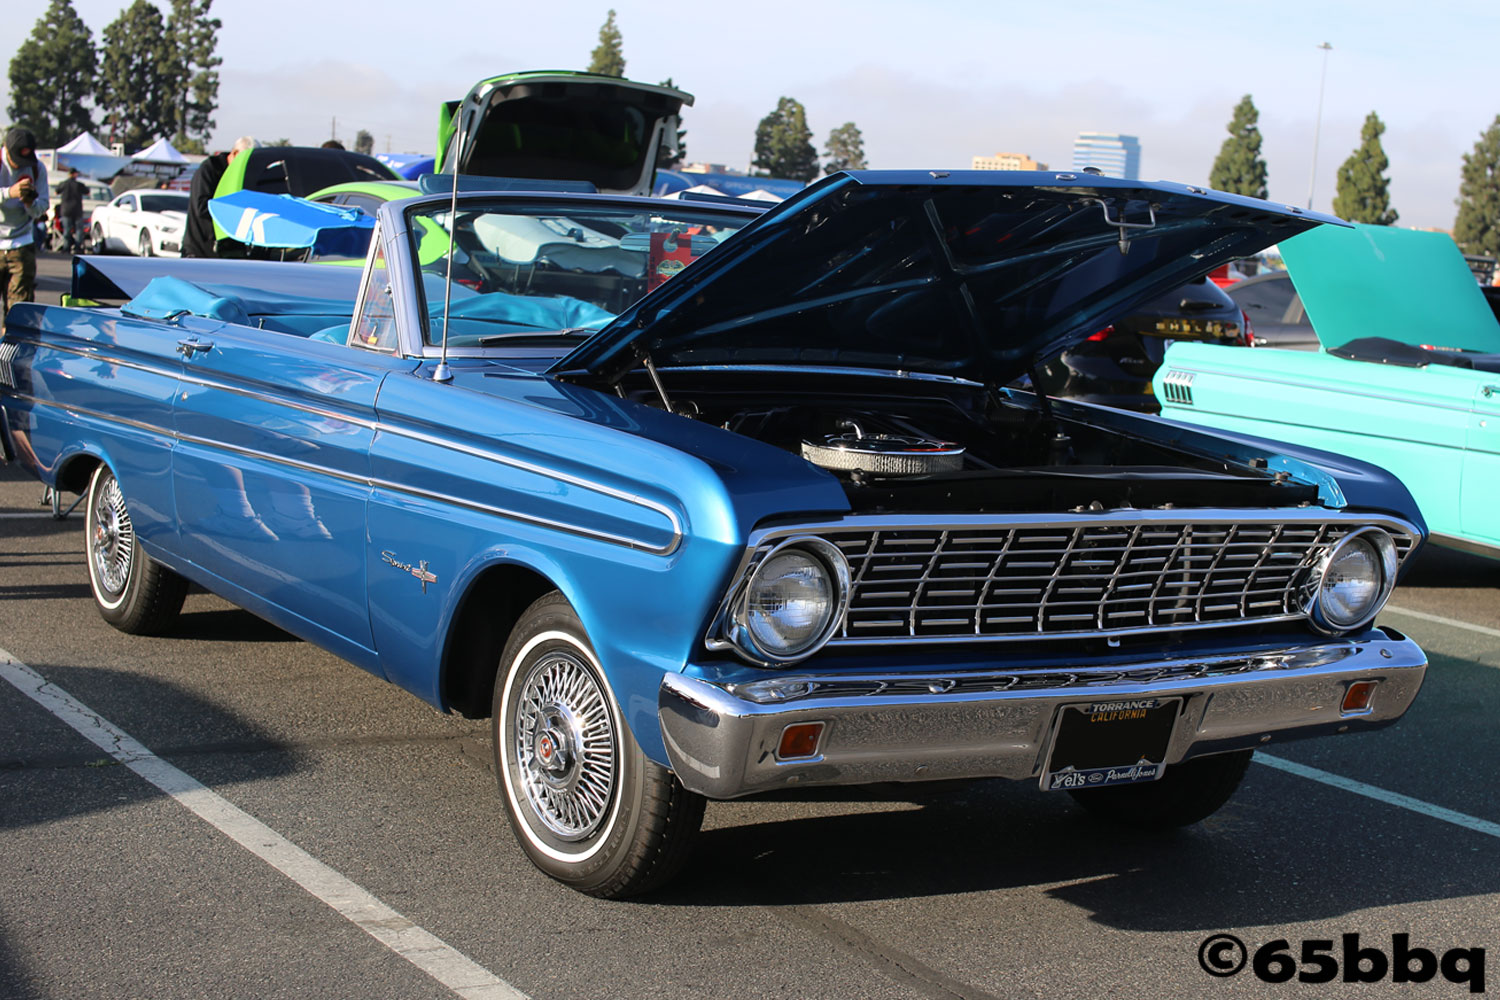 fabulous-fords-forever-april-2019-65bbq-f23.jpg